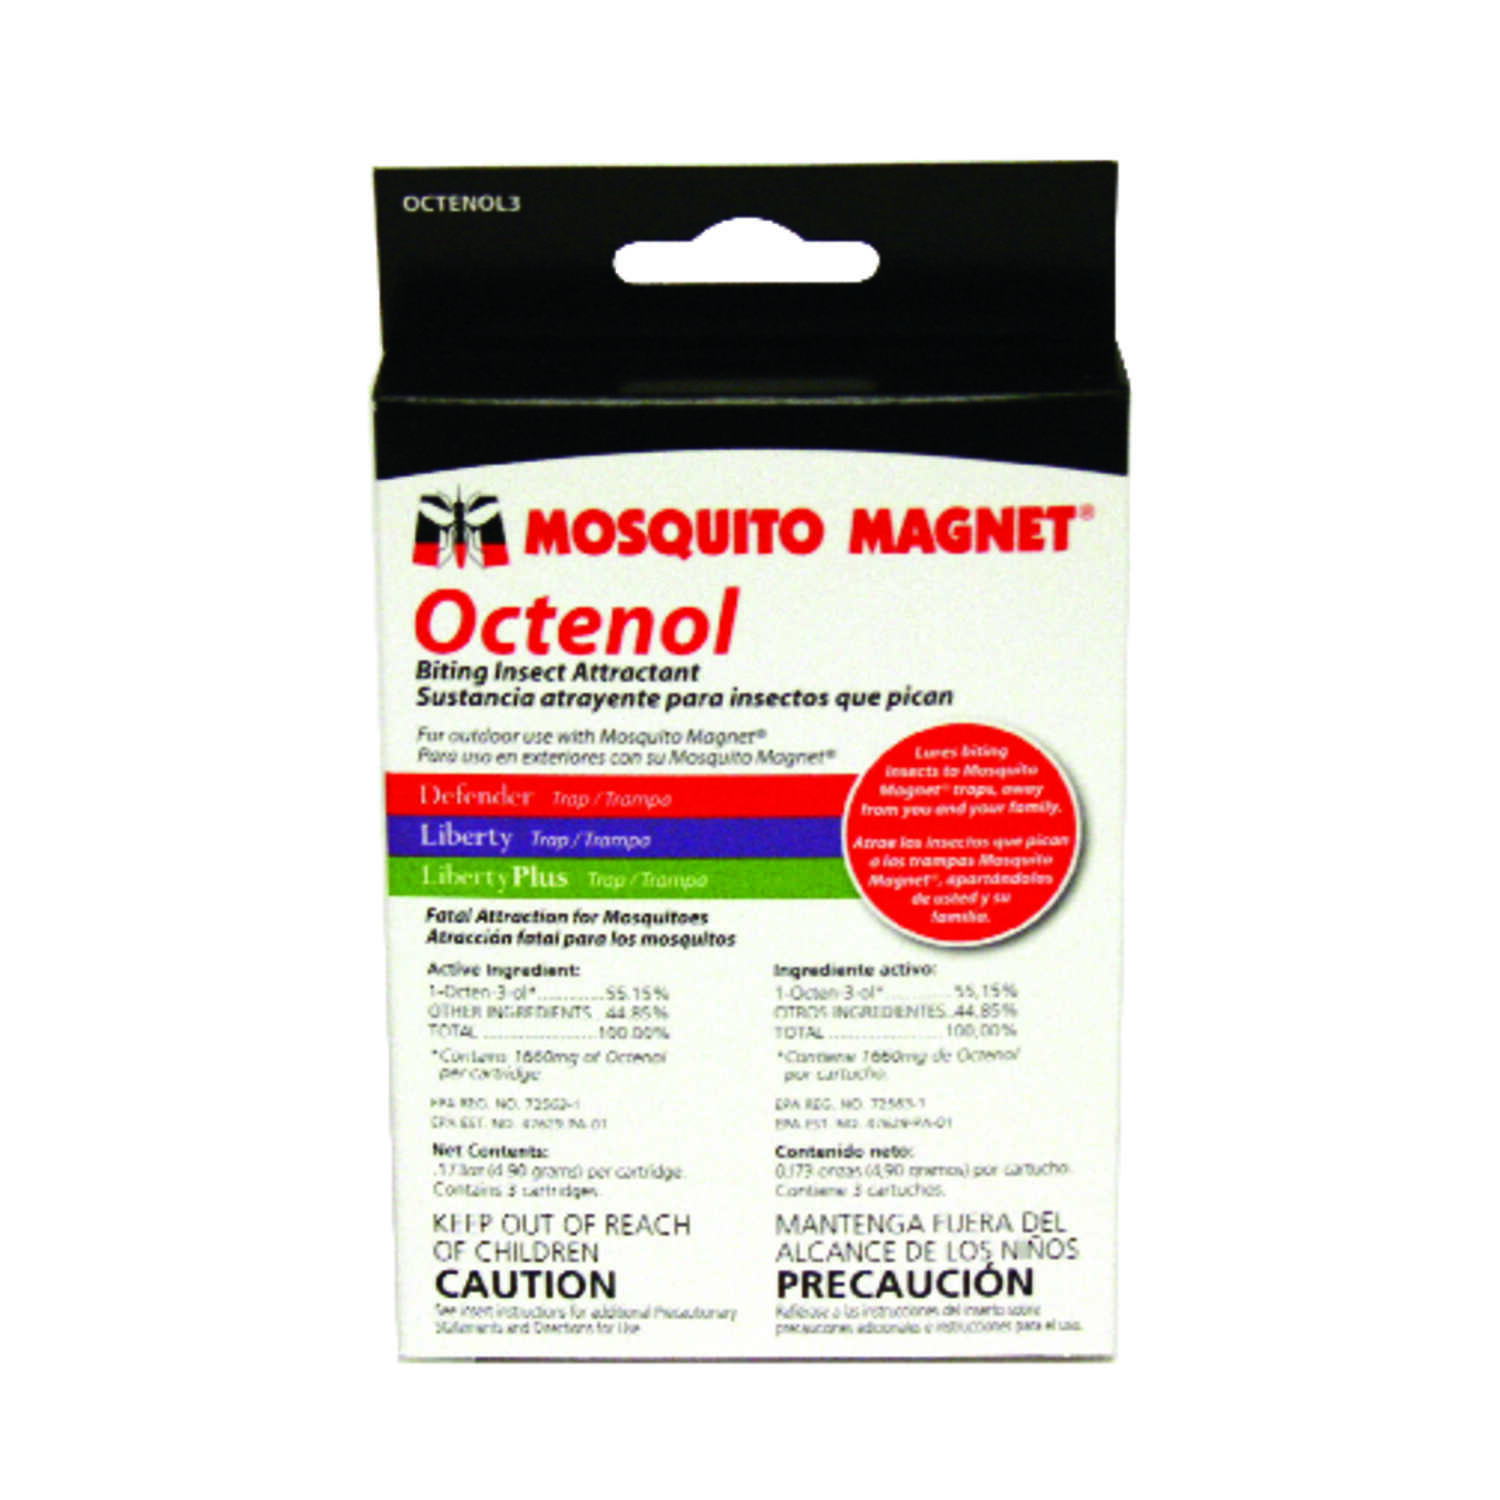 Mosquito Magnet  Outdoor  Biting Insect Attractant